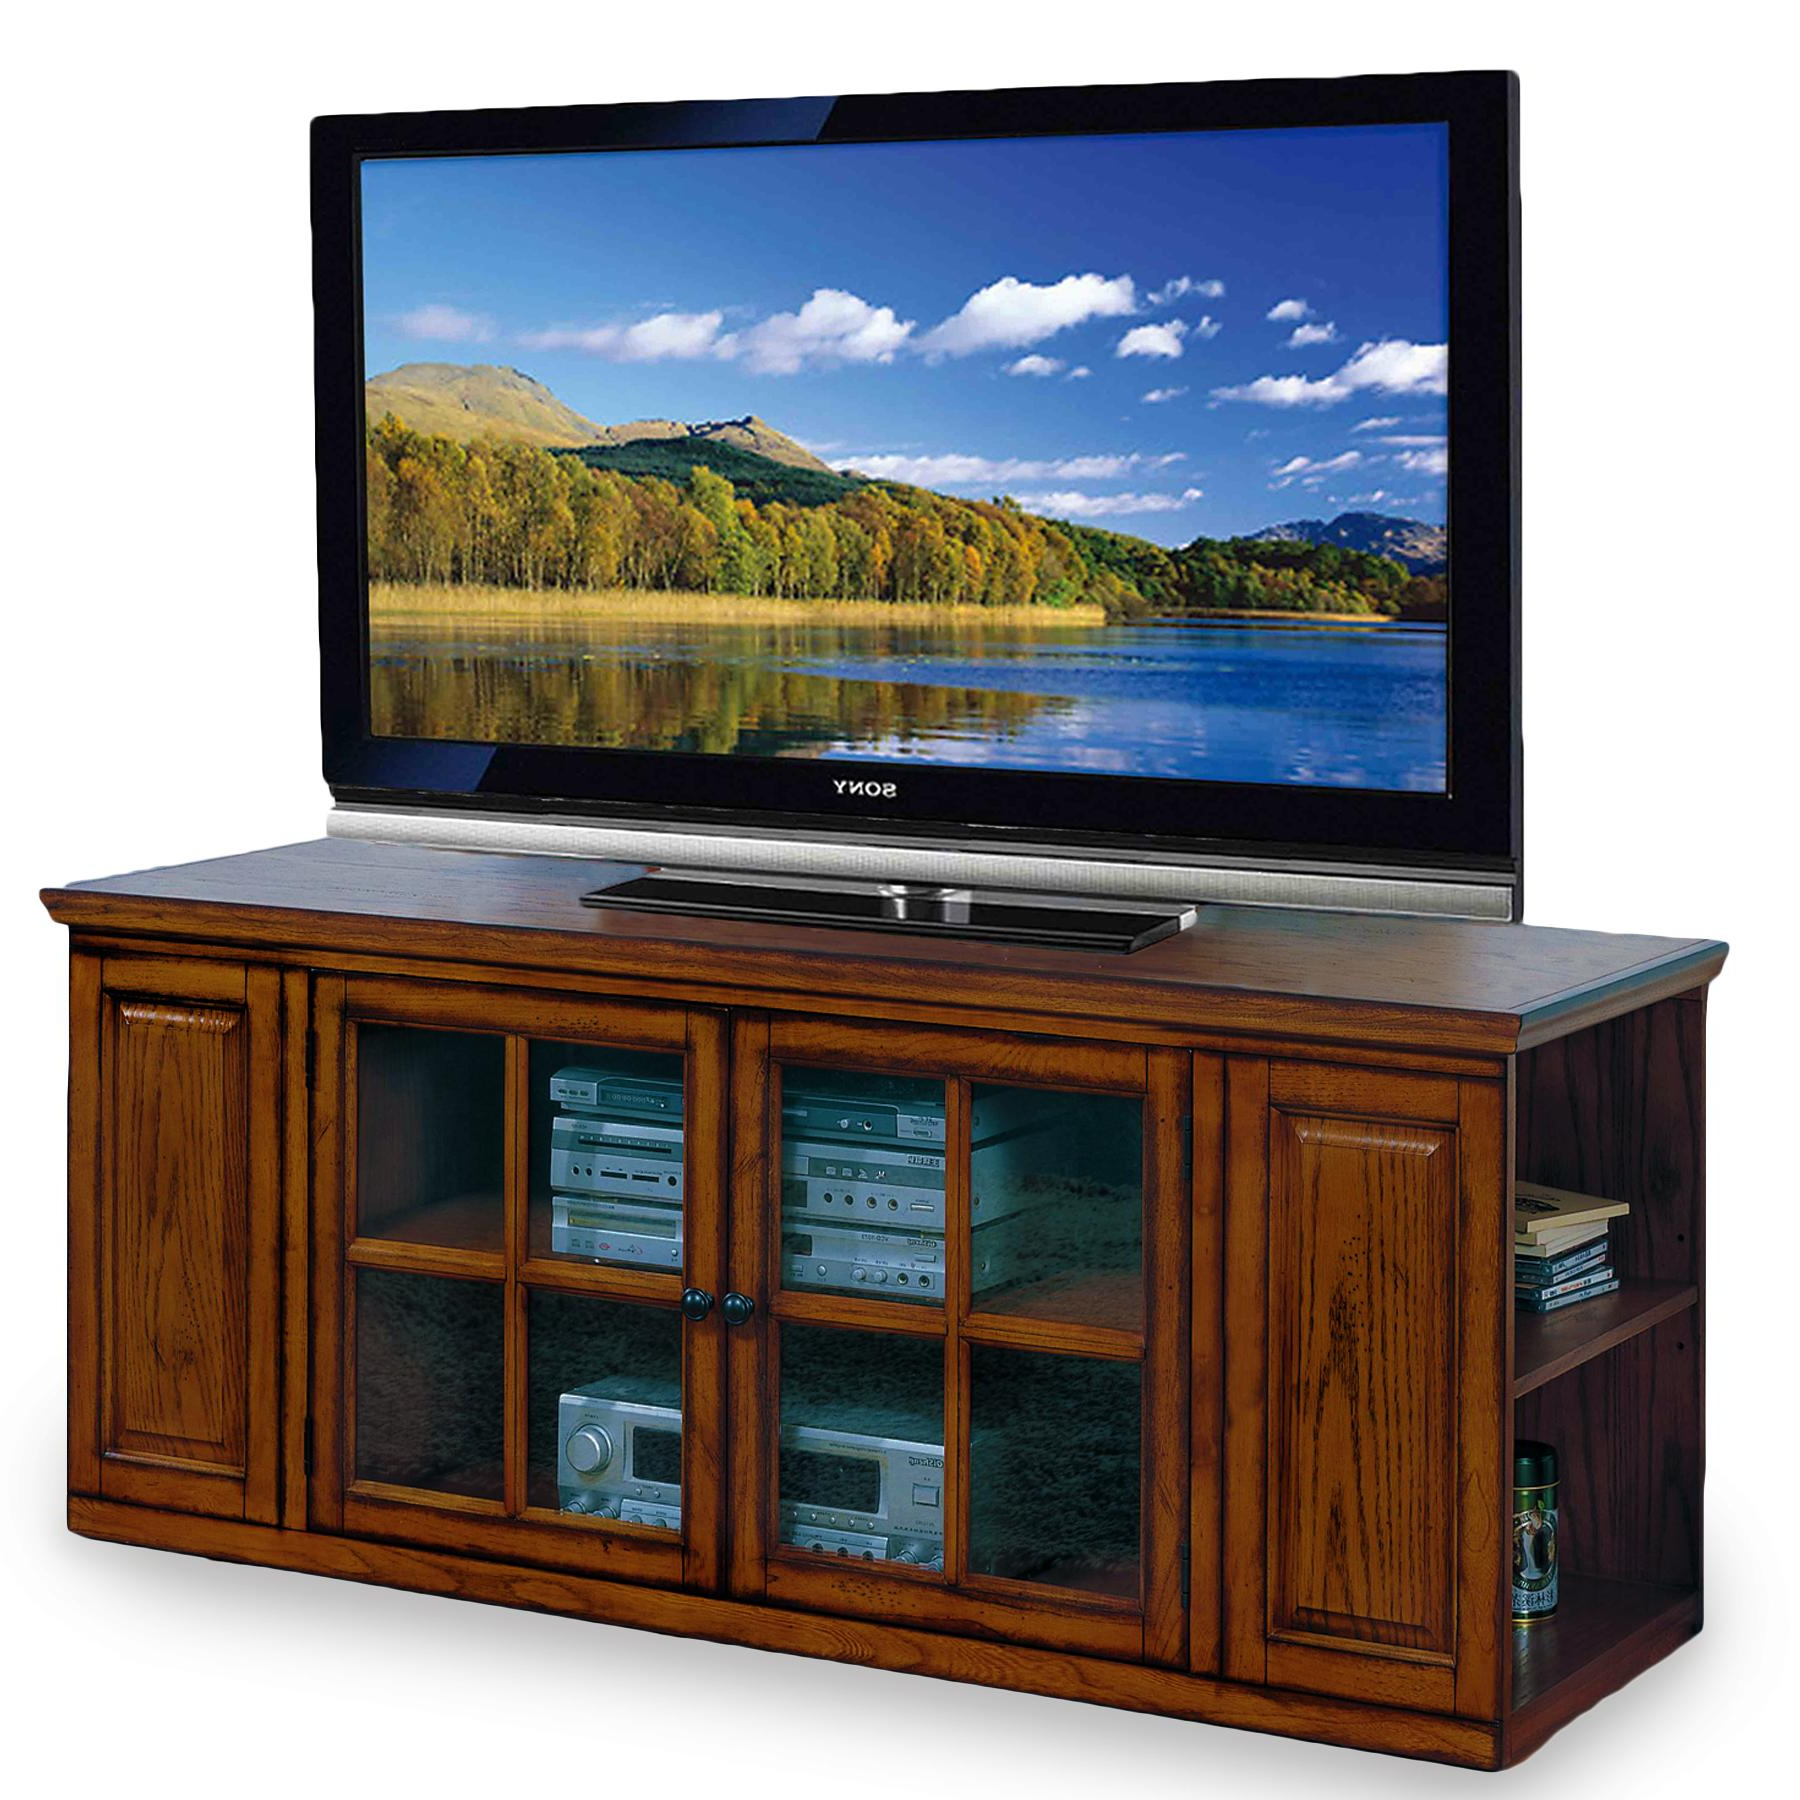 Amazon: Leick Riley Holliday Tv Stand, 62 Inch, Burnished Oak For Favorite Tv Stands Cabinets (Gallery 19 of 20)